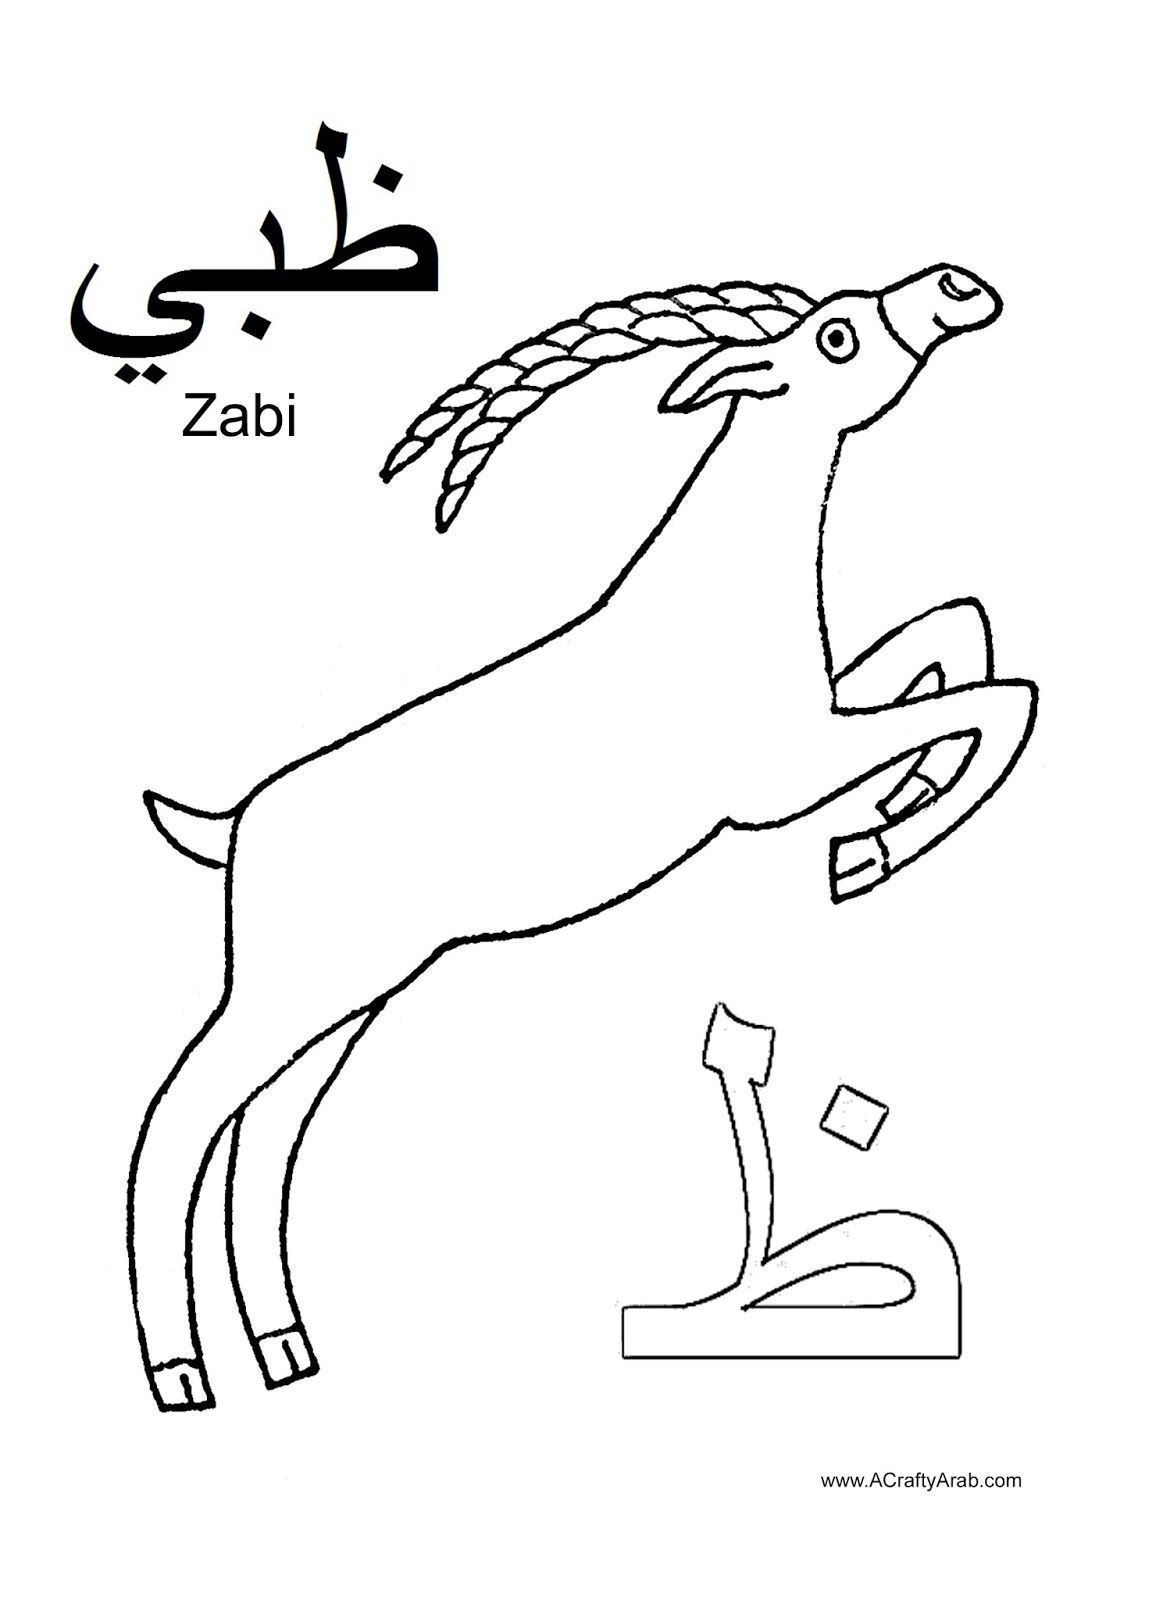 1163x1600 A Crafty Arab Arabic Alphabet Coloring Pages Za Is For Zabi Be